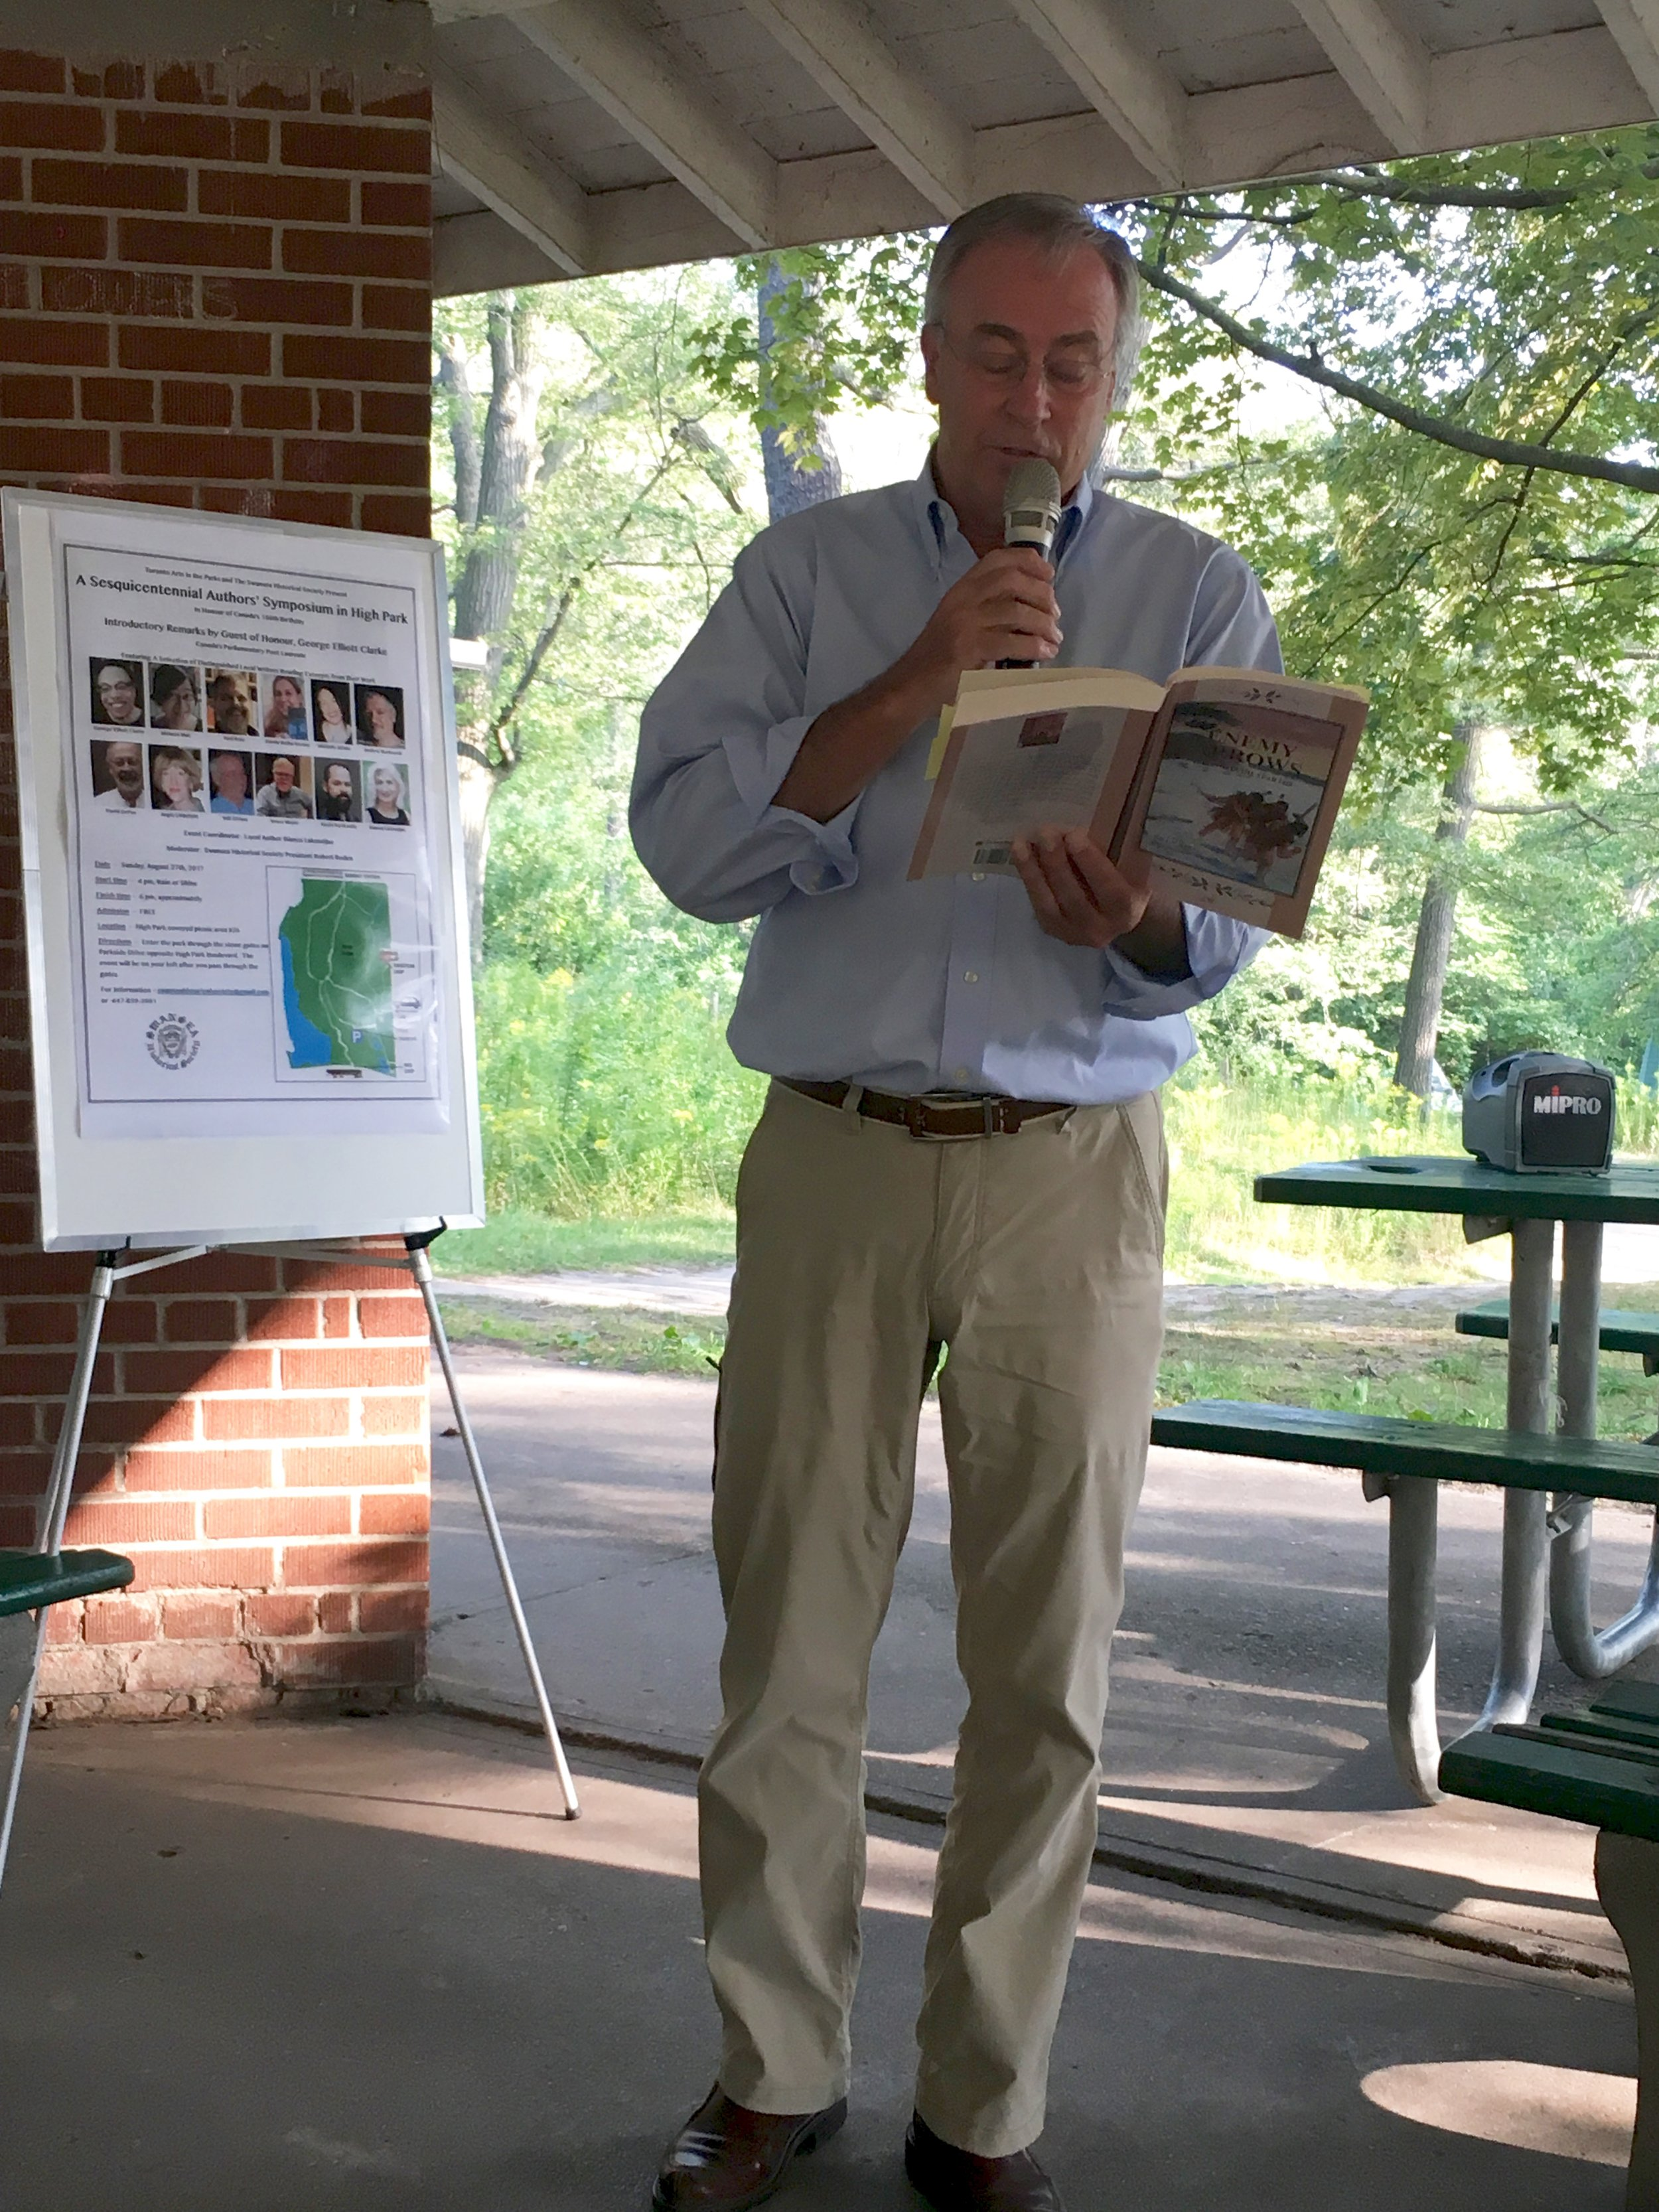 Author Will O'Hara reading from his book, Enemy Arrows